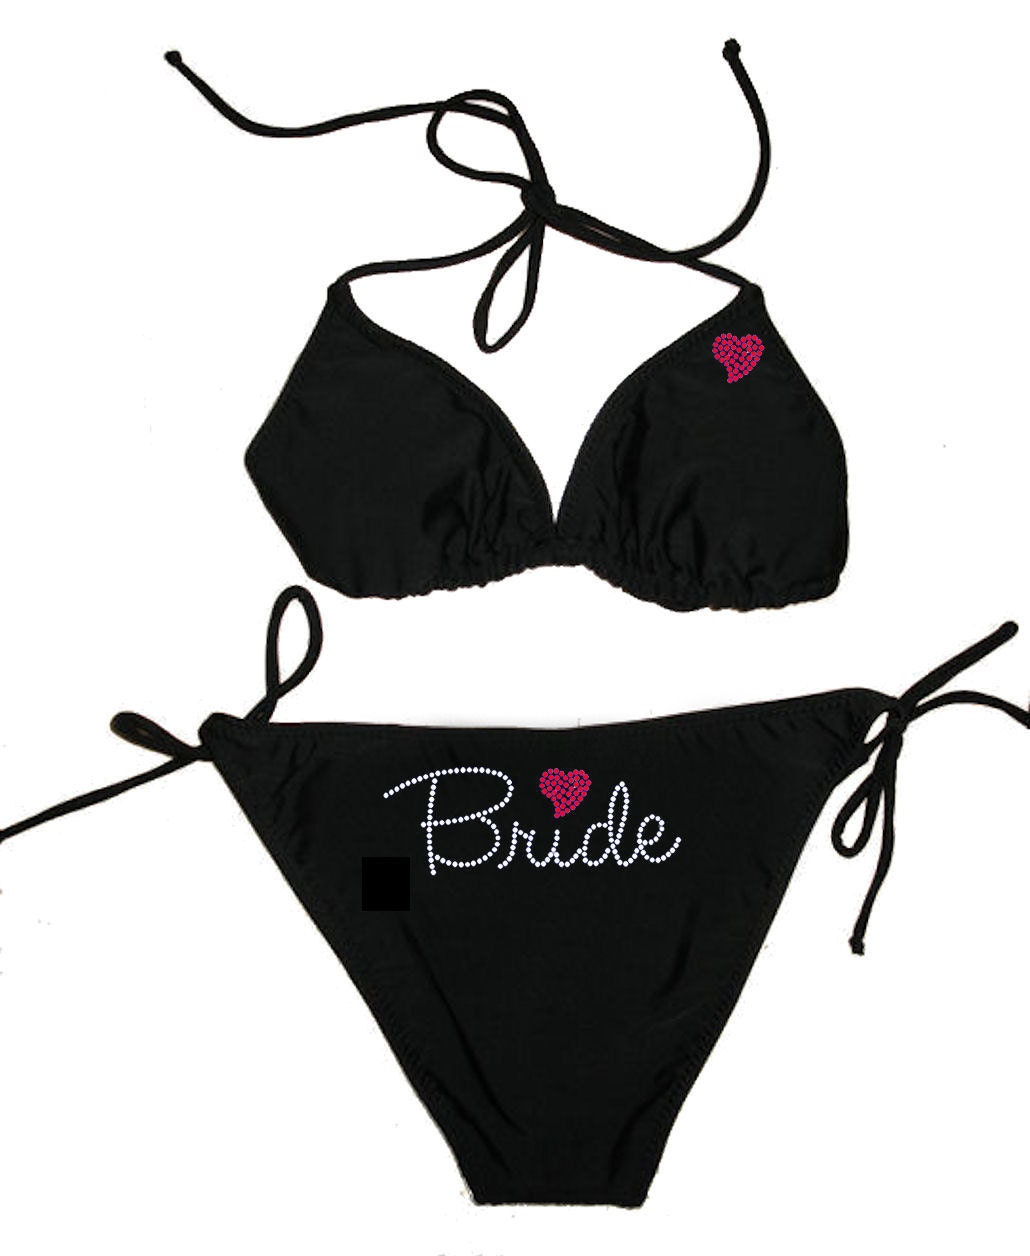 Custom Bikini - Bride Bikini with Rhinestone Heart - Honeymoon Bikini - I Do ...